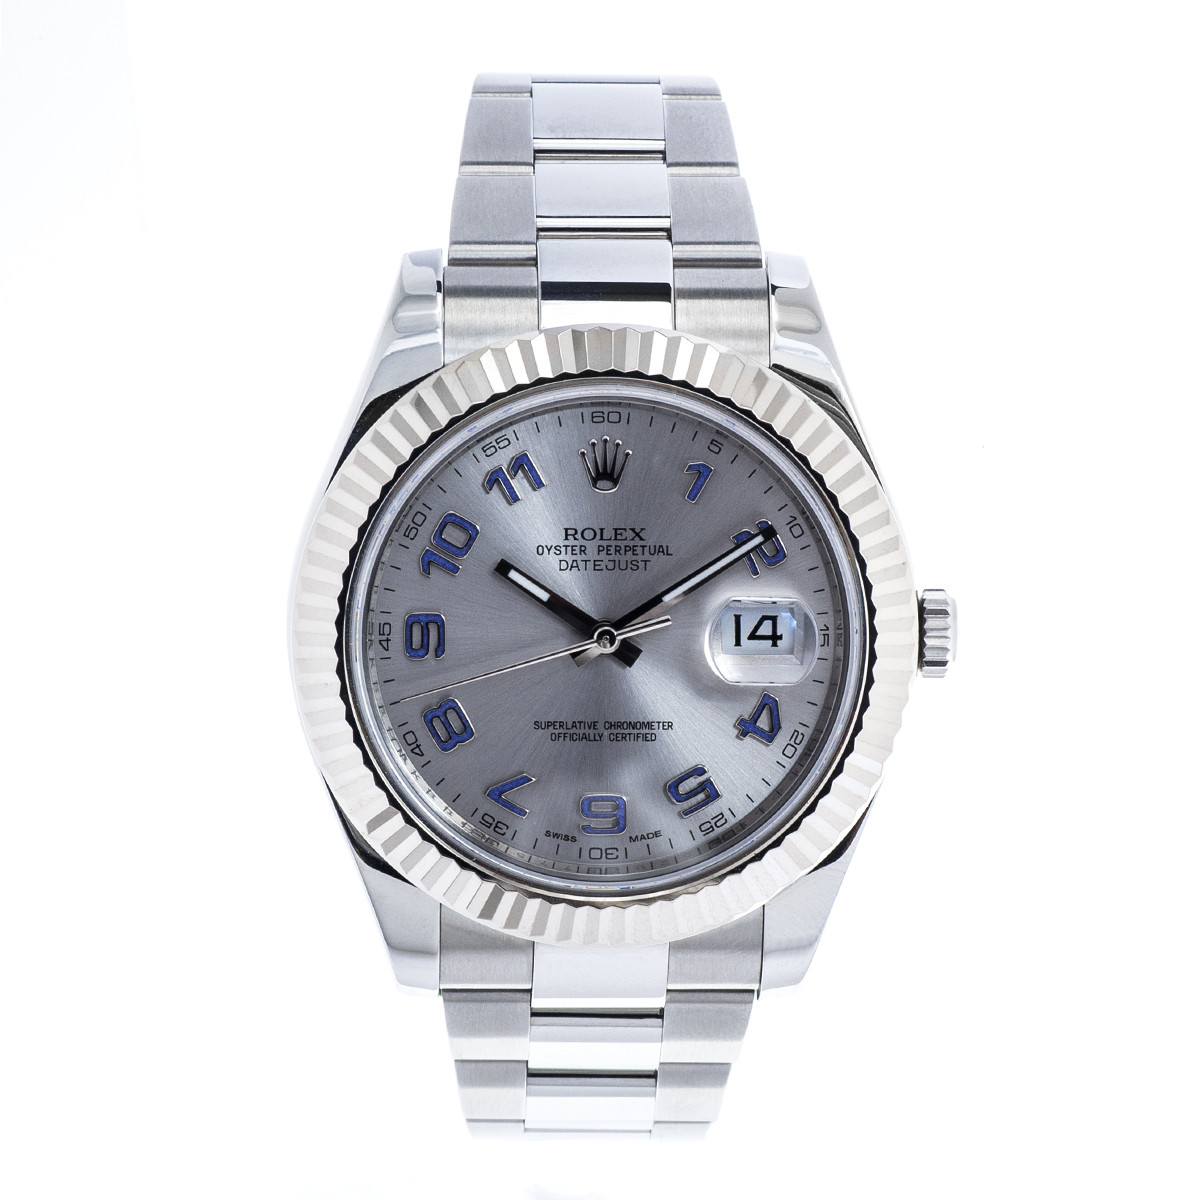 Pre-Owned Men's Stainless Steel Rolex Datejust II with Silver Dial